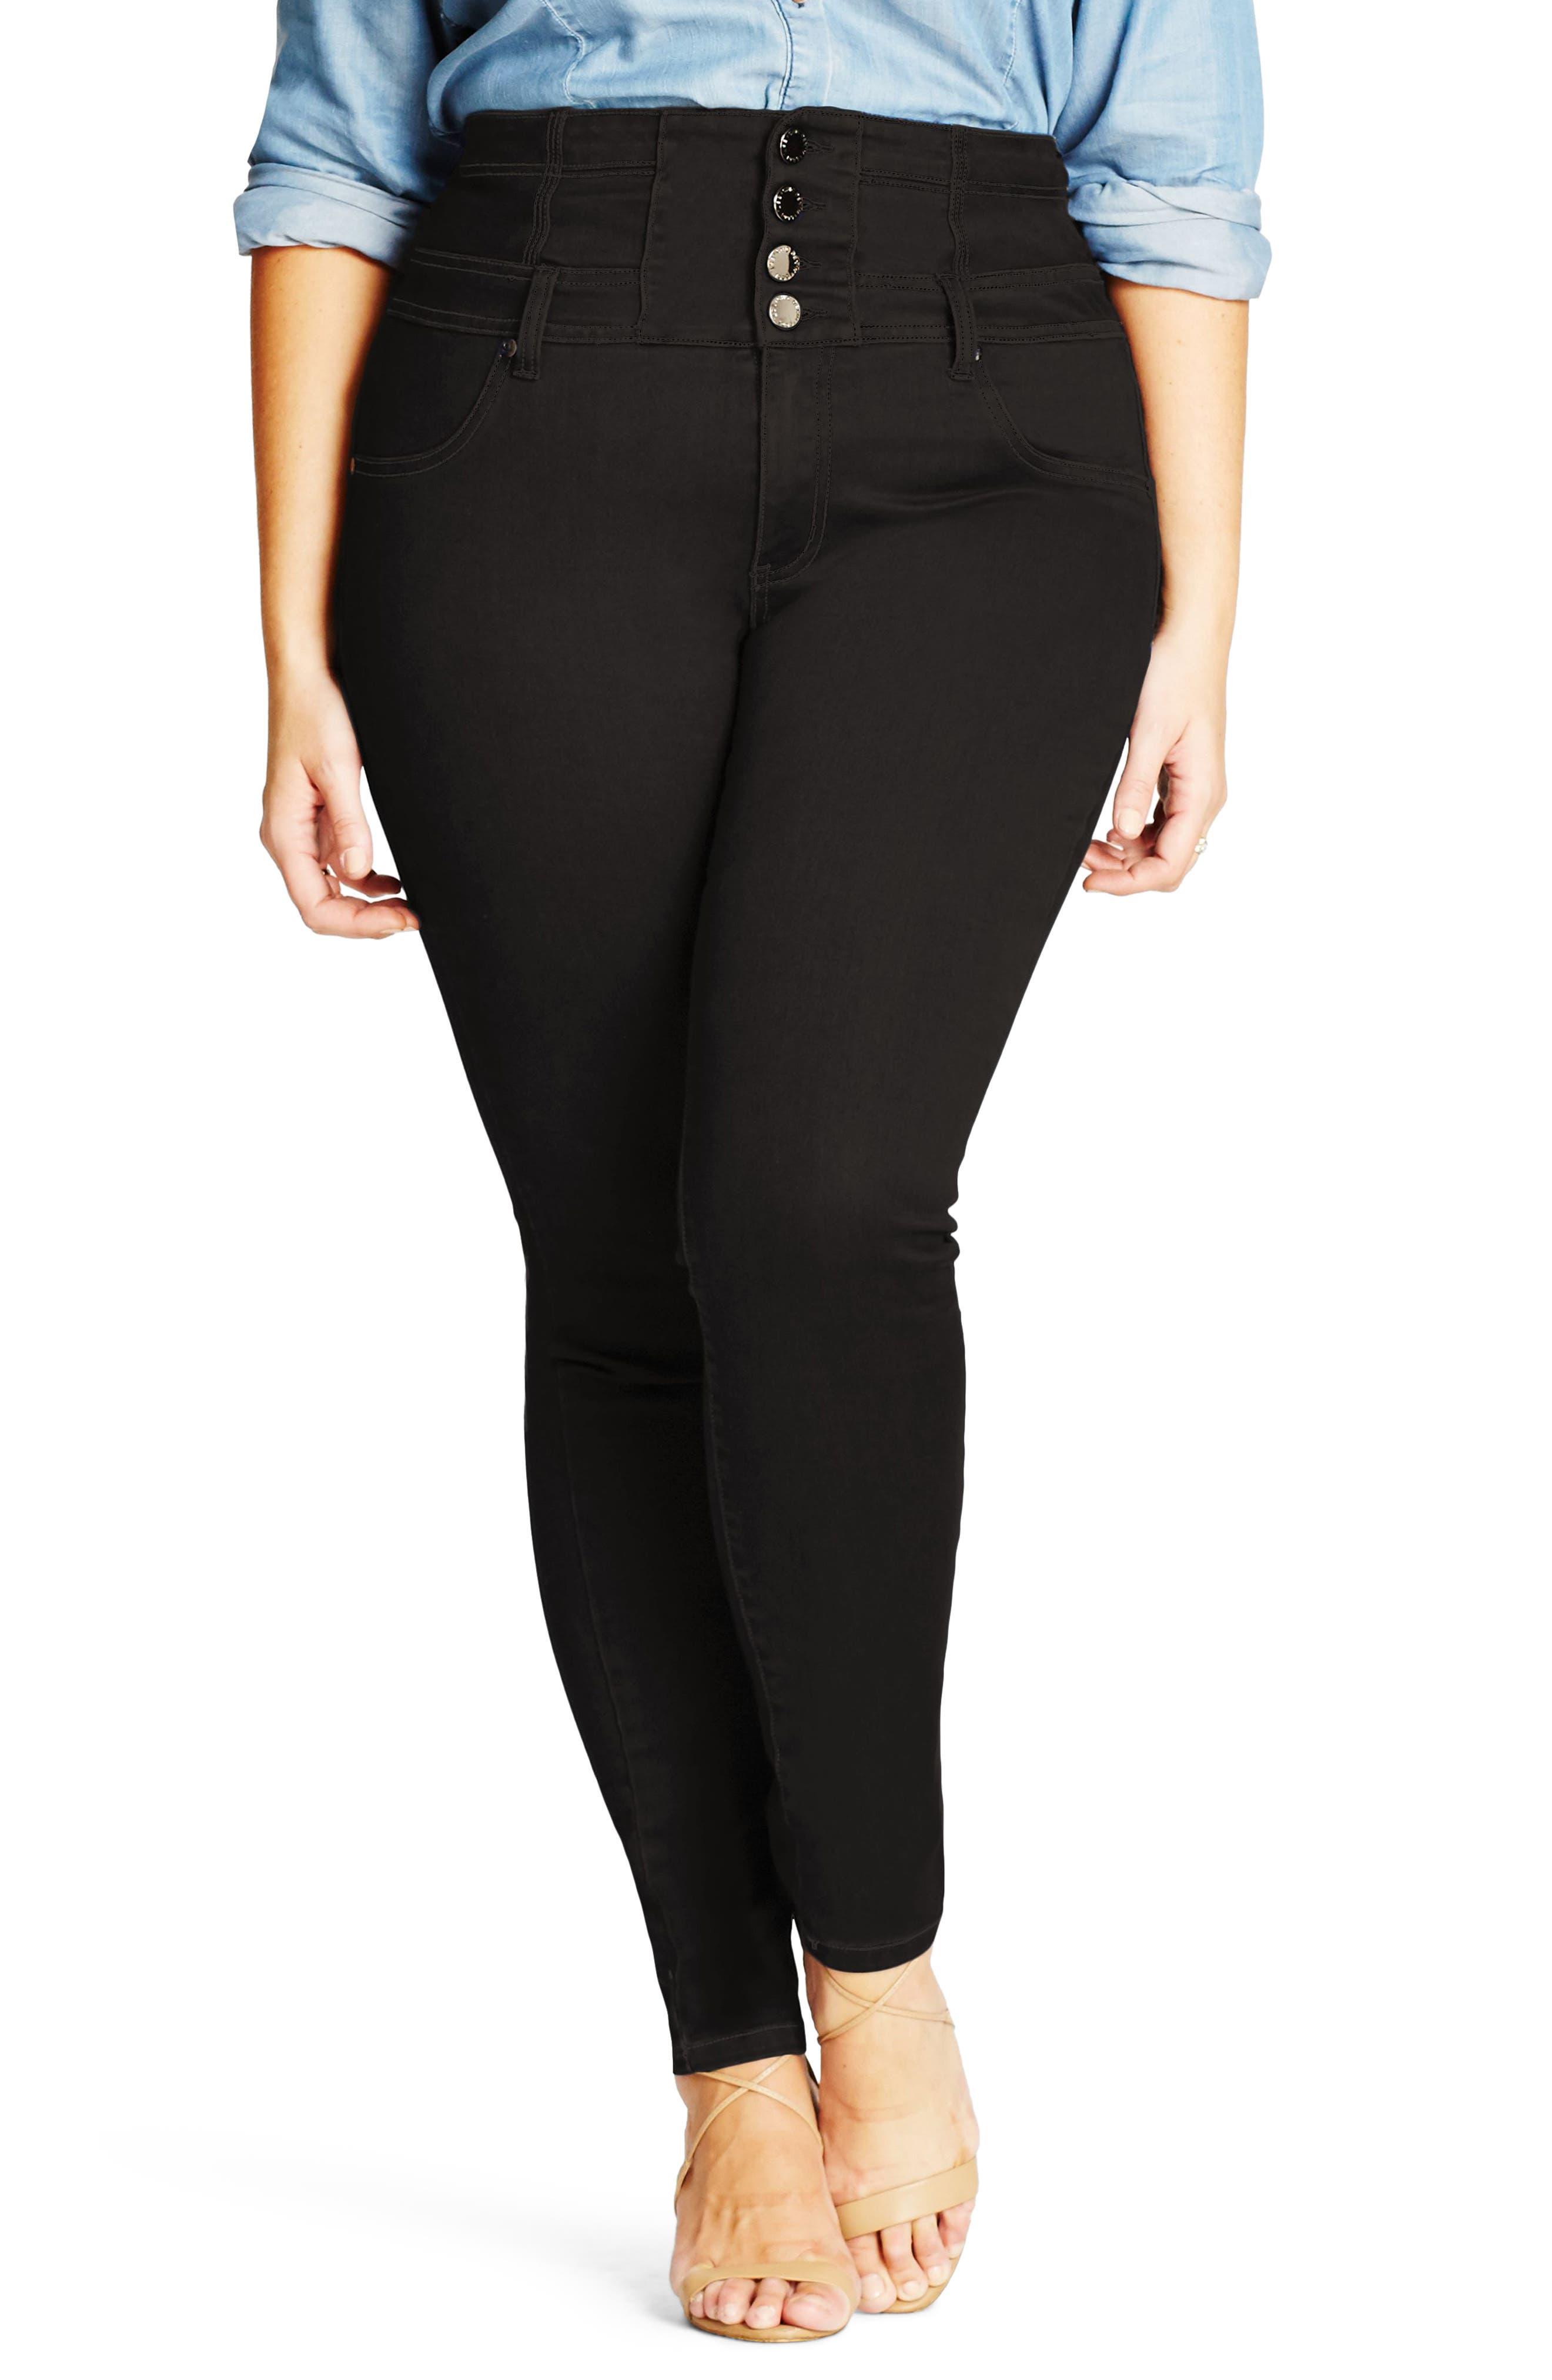 Main Image - City Chic Harley Corset Skinny Jeans (Plus Size)